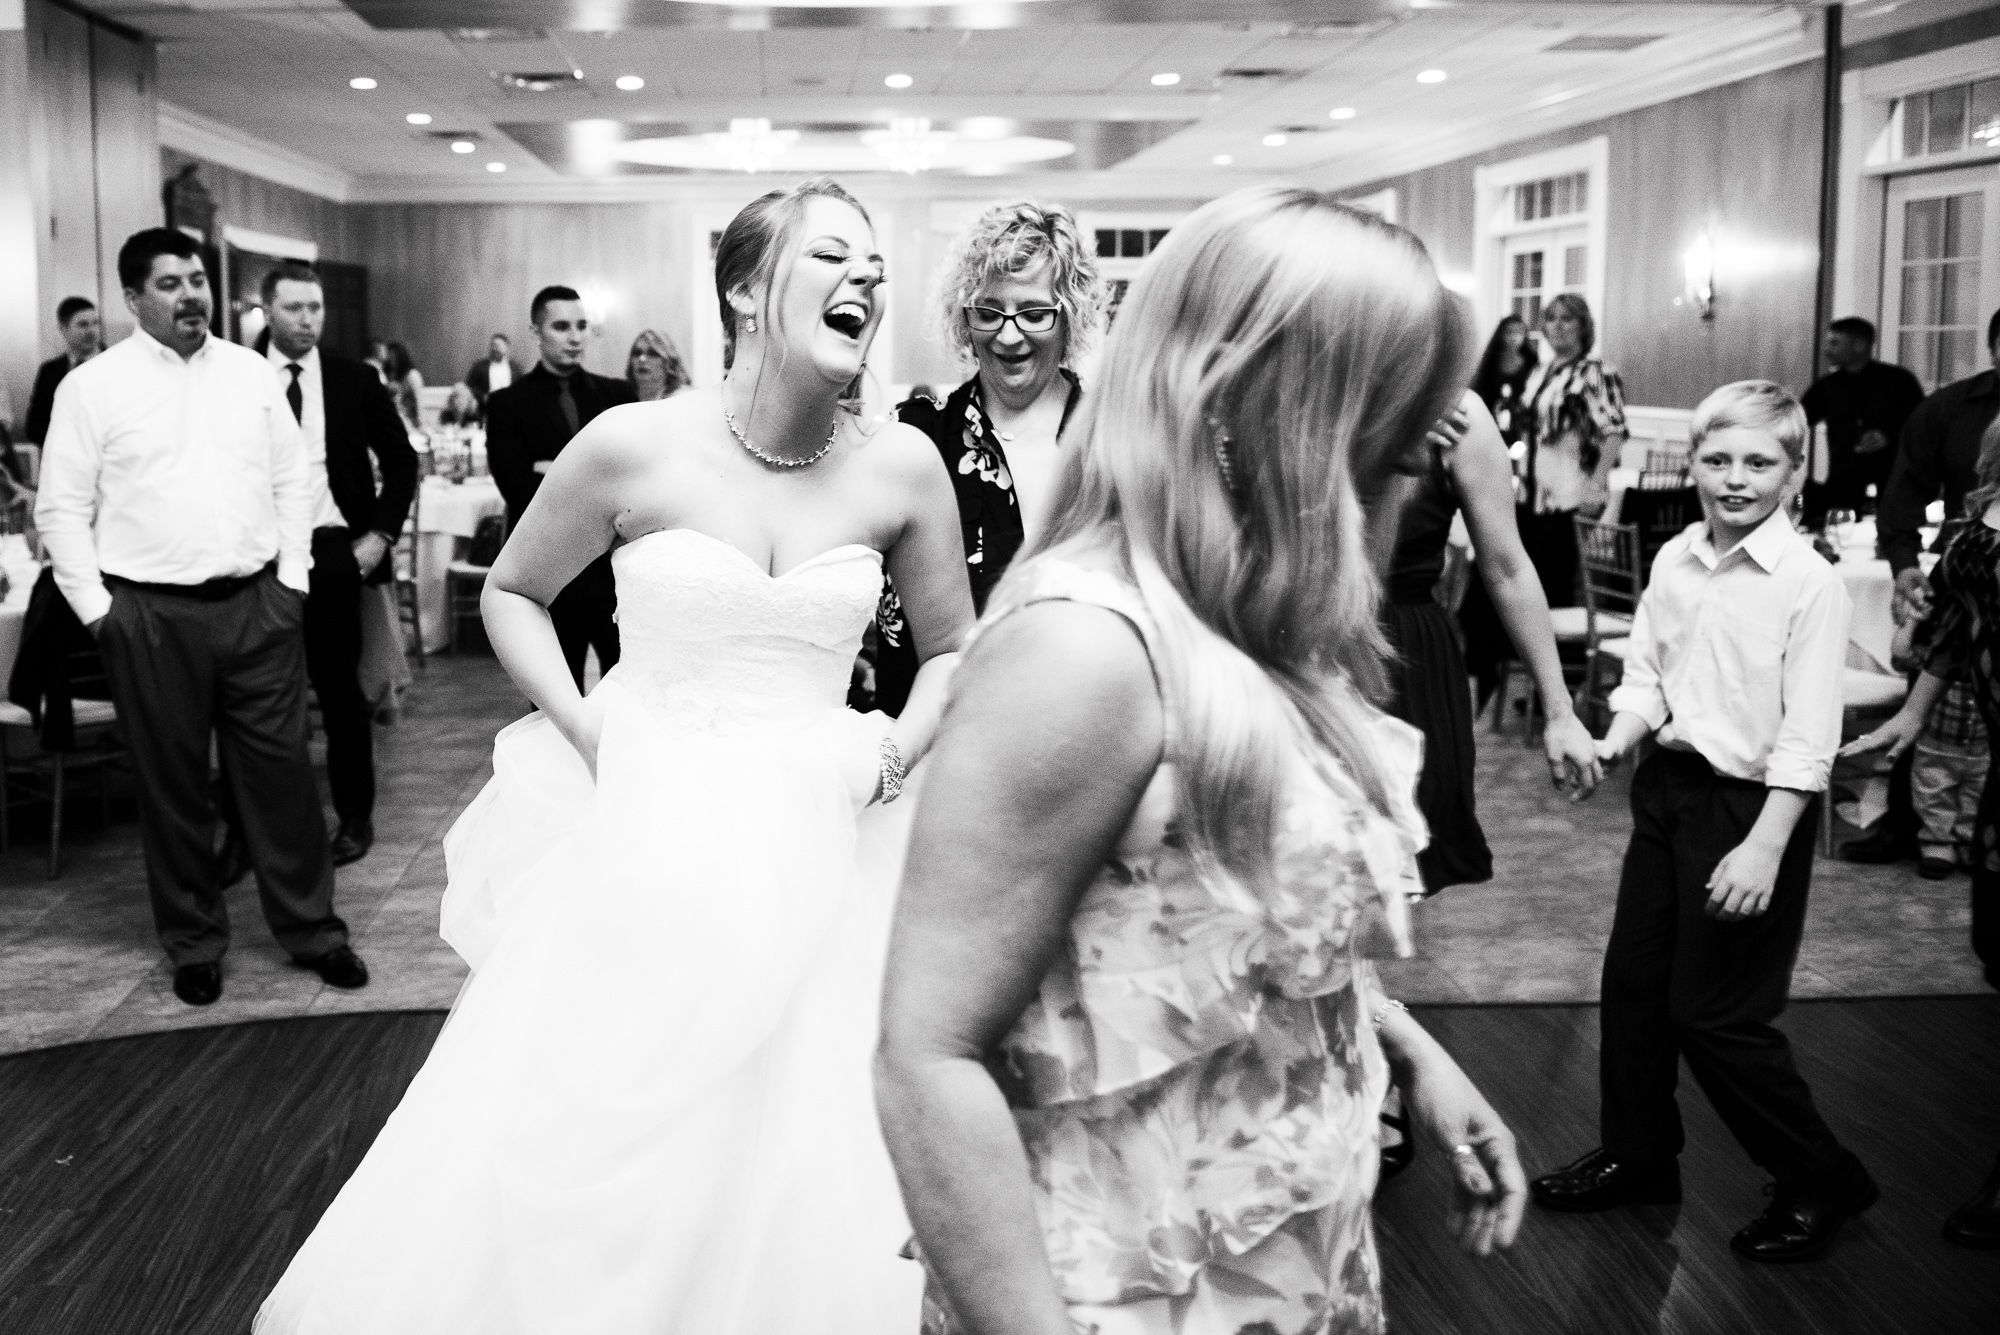 Stephen & Amanda's Wedding (144 of 228).jpg